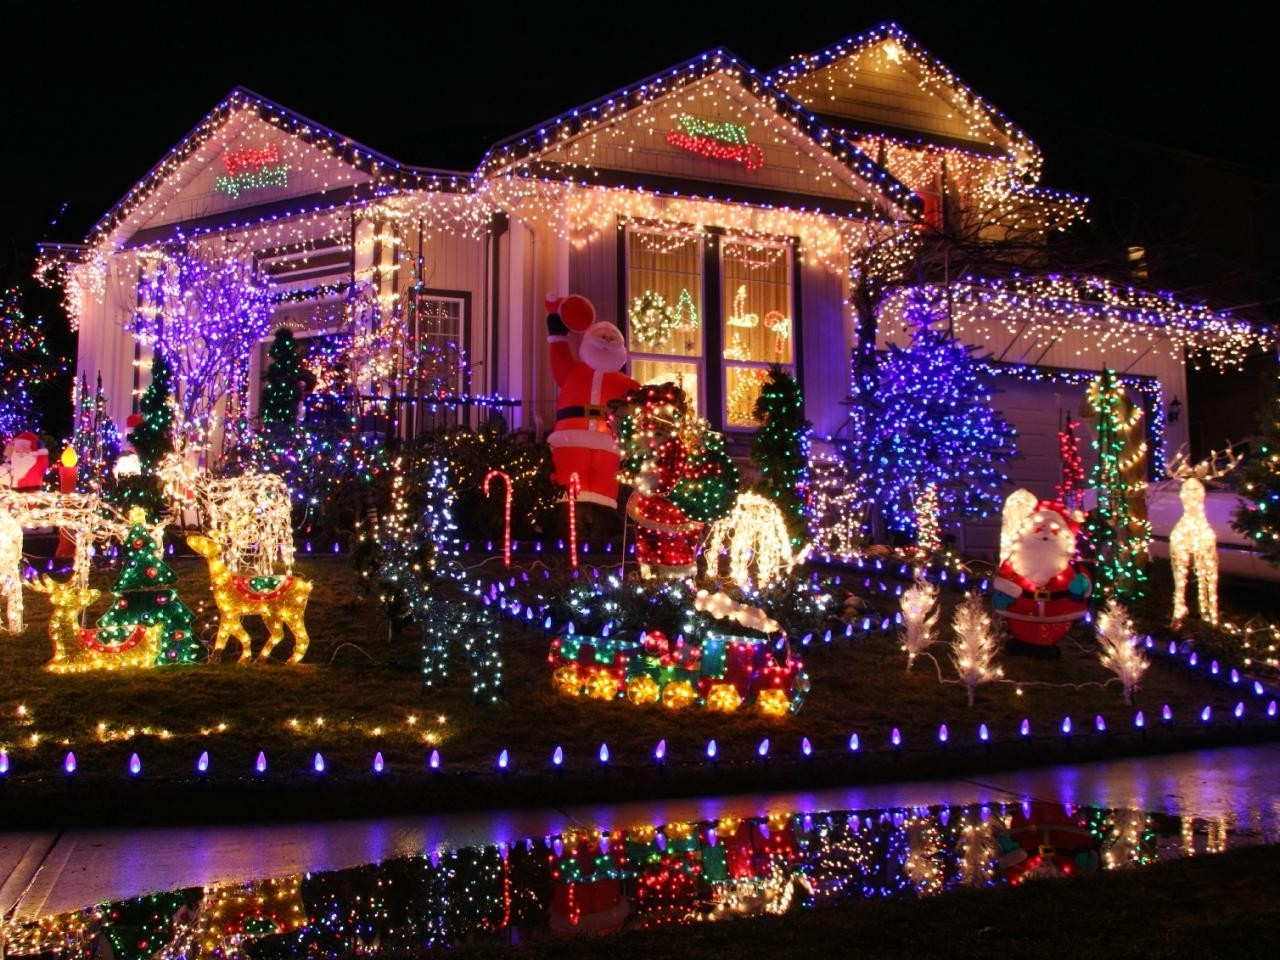 Outdoor Xmas Lanterns In 2018 Grinch Christmas Lights Outdoor Exalted 38 Awesome Outdoor Christmas (View 3 of 20)